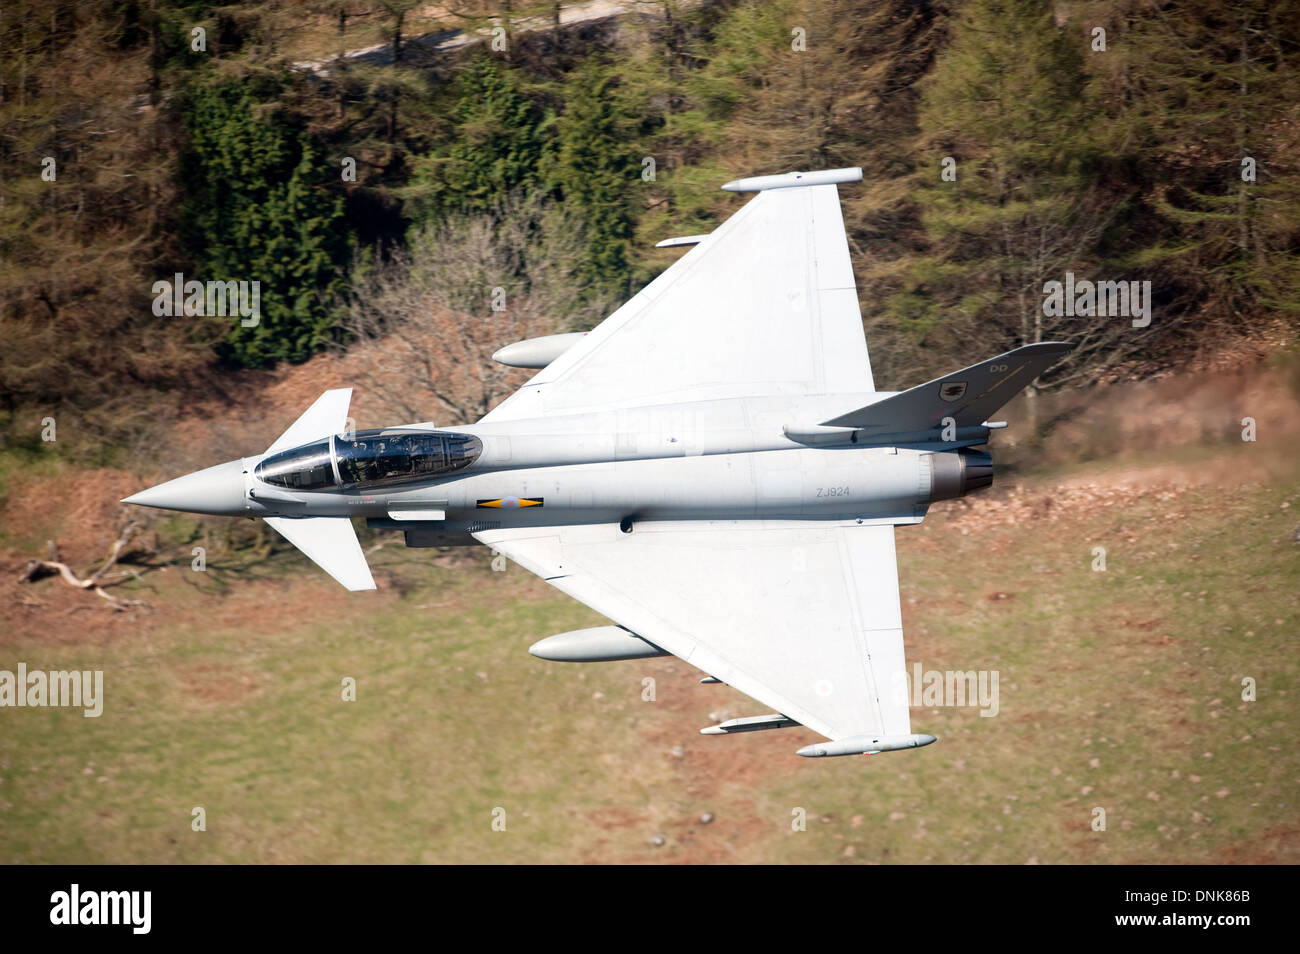 RAF, typhoon,f2, Eurofighter, FGR4, multi-role,    combat, aircraft, speed, fast, mach loop,  low level, north wales, - Stock Image